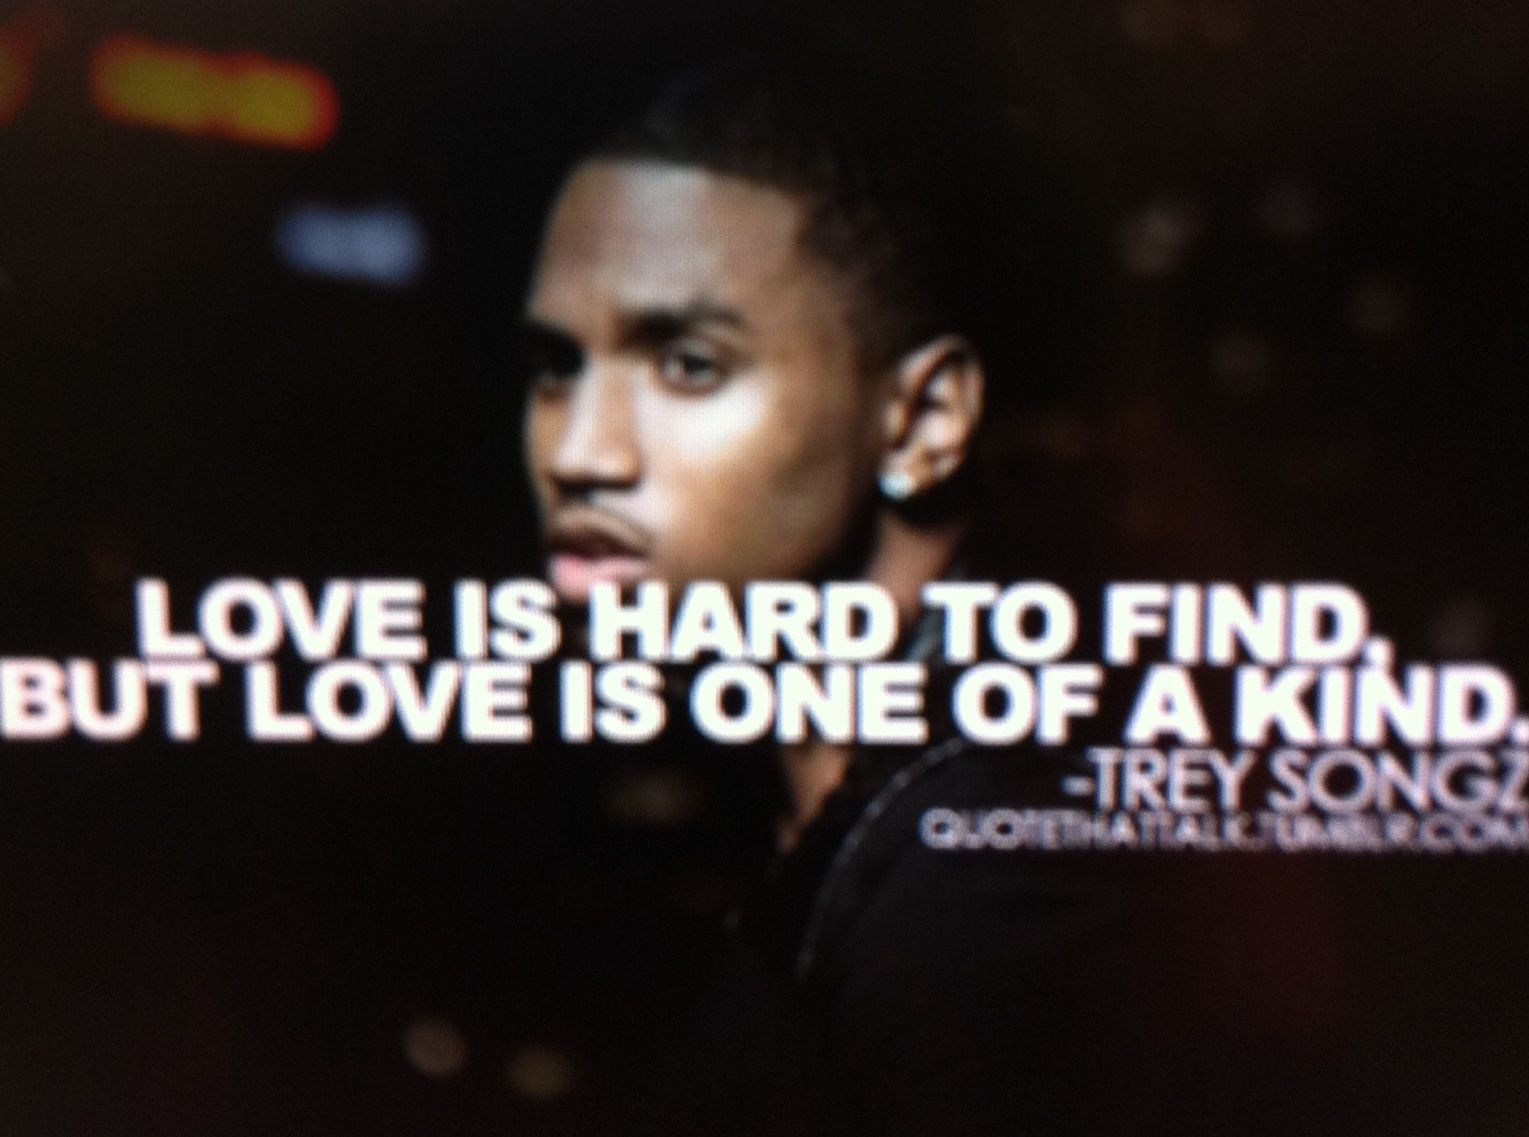 Trey Songz Quotes. QuotesGram